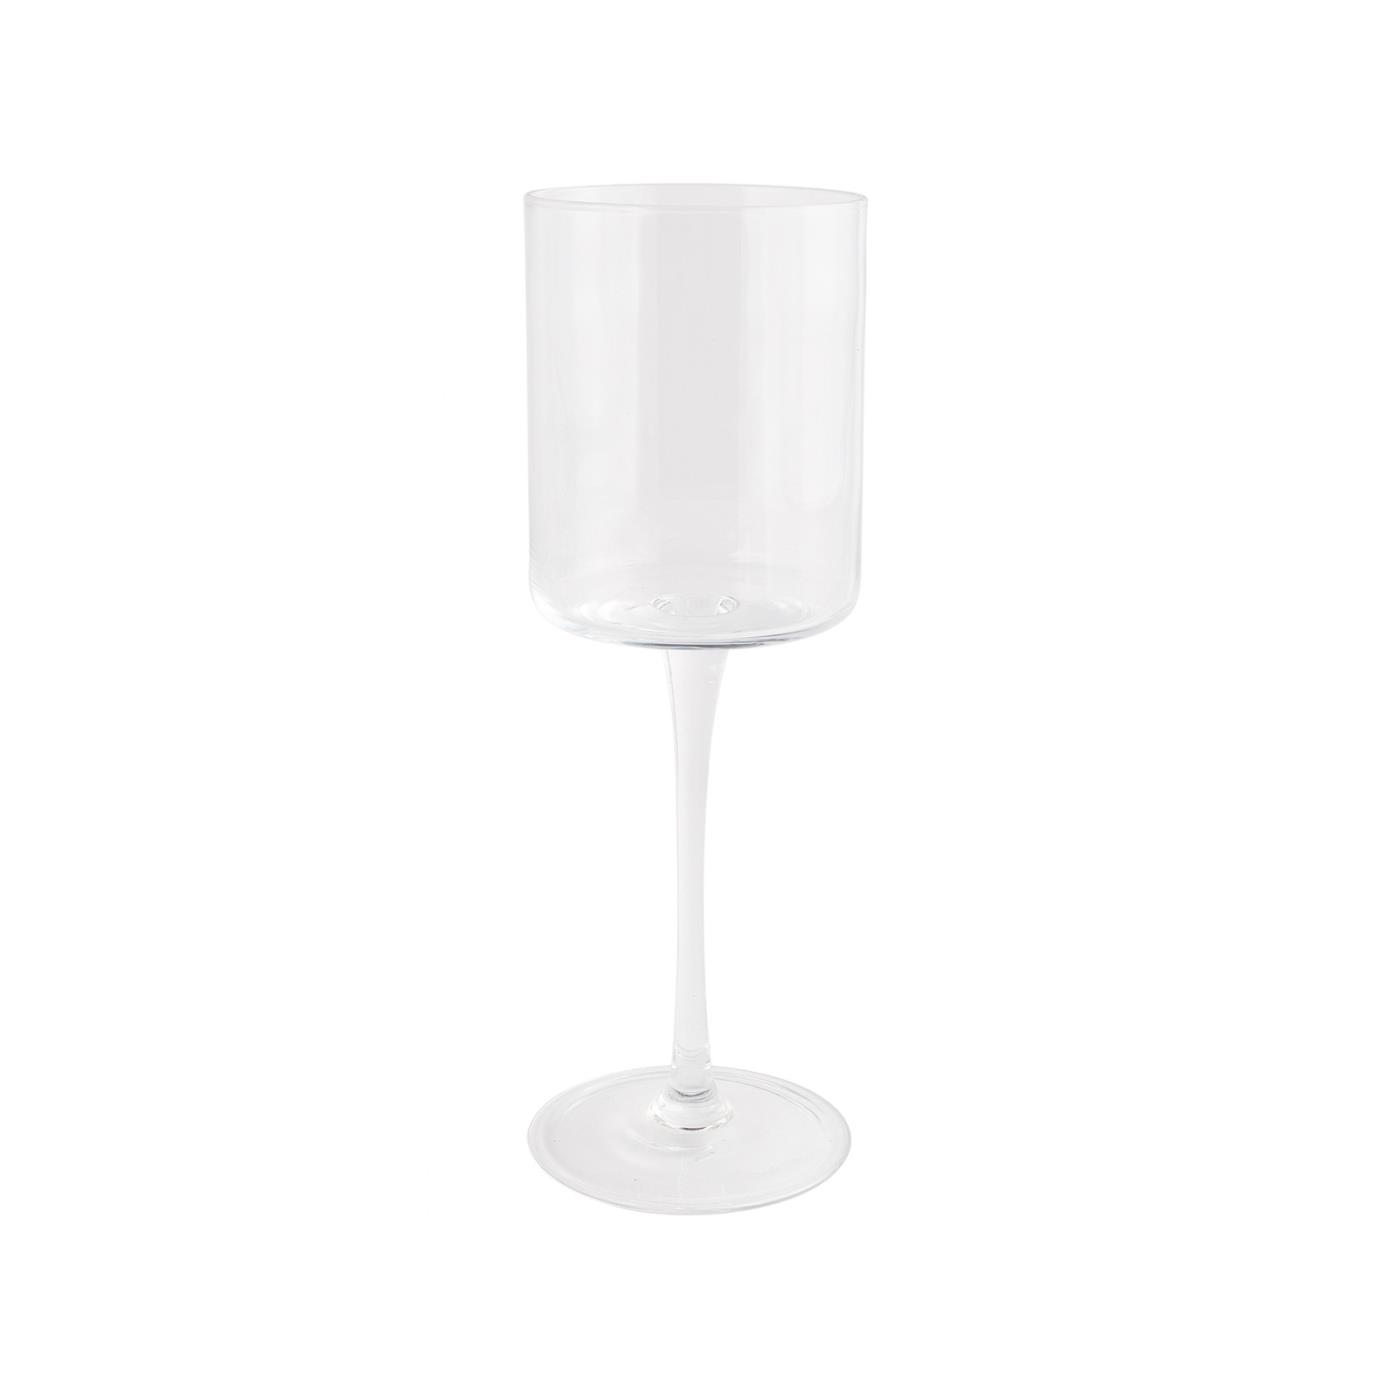 Mod - White Wine Glass 10 oz